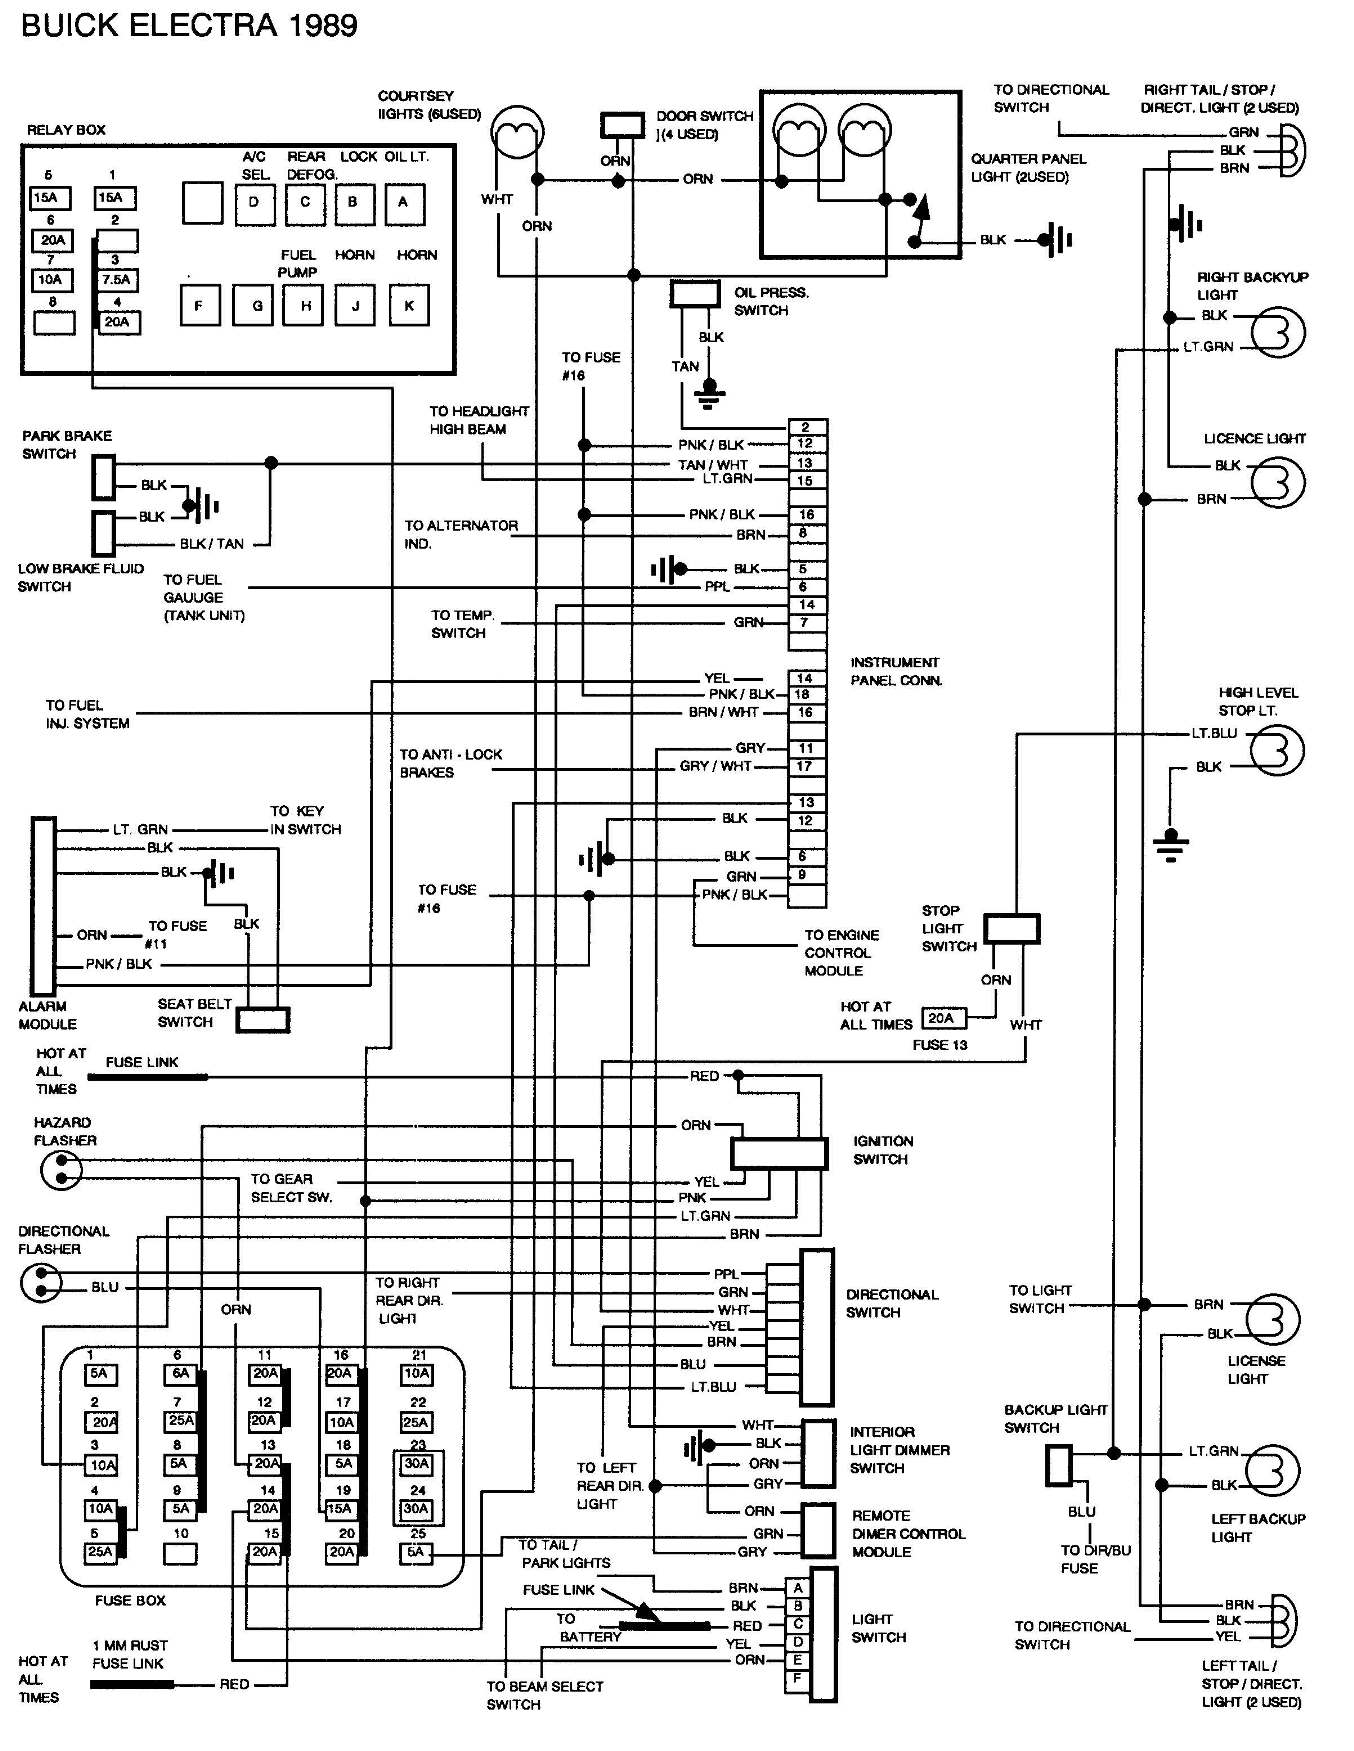 2016 Gmc Wiring Schematics. 60 new 2016 gmc canyon sle seat wiring diagram  images. 2016 gmc sierra trailer wiring diagram. roger vivi ersaks 2005  colorado wiring diagram. gmc savana trailer wiring diagramA.2002-acura-tl-radio.info. All Rights Reserved.